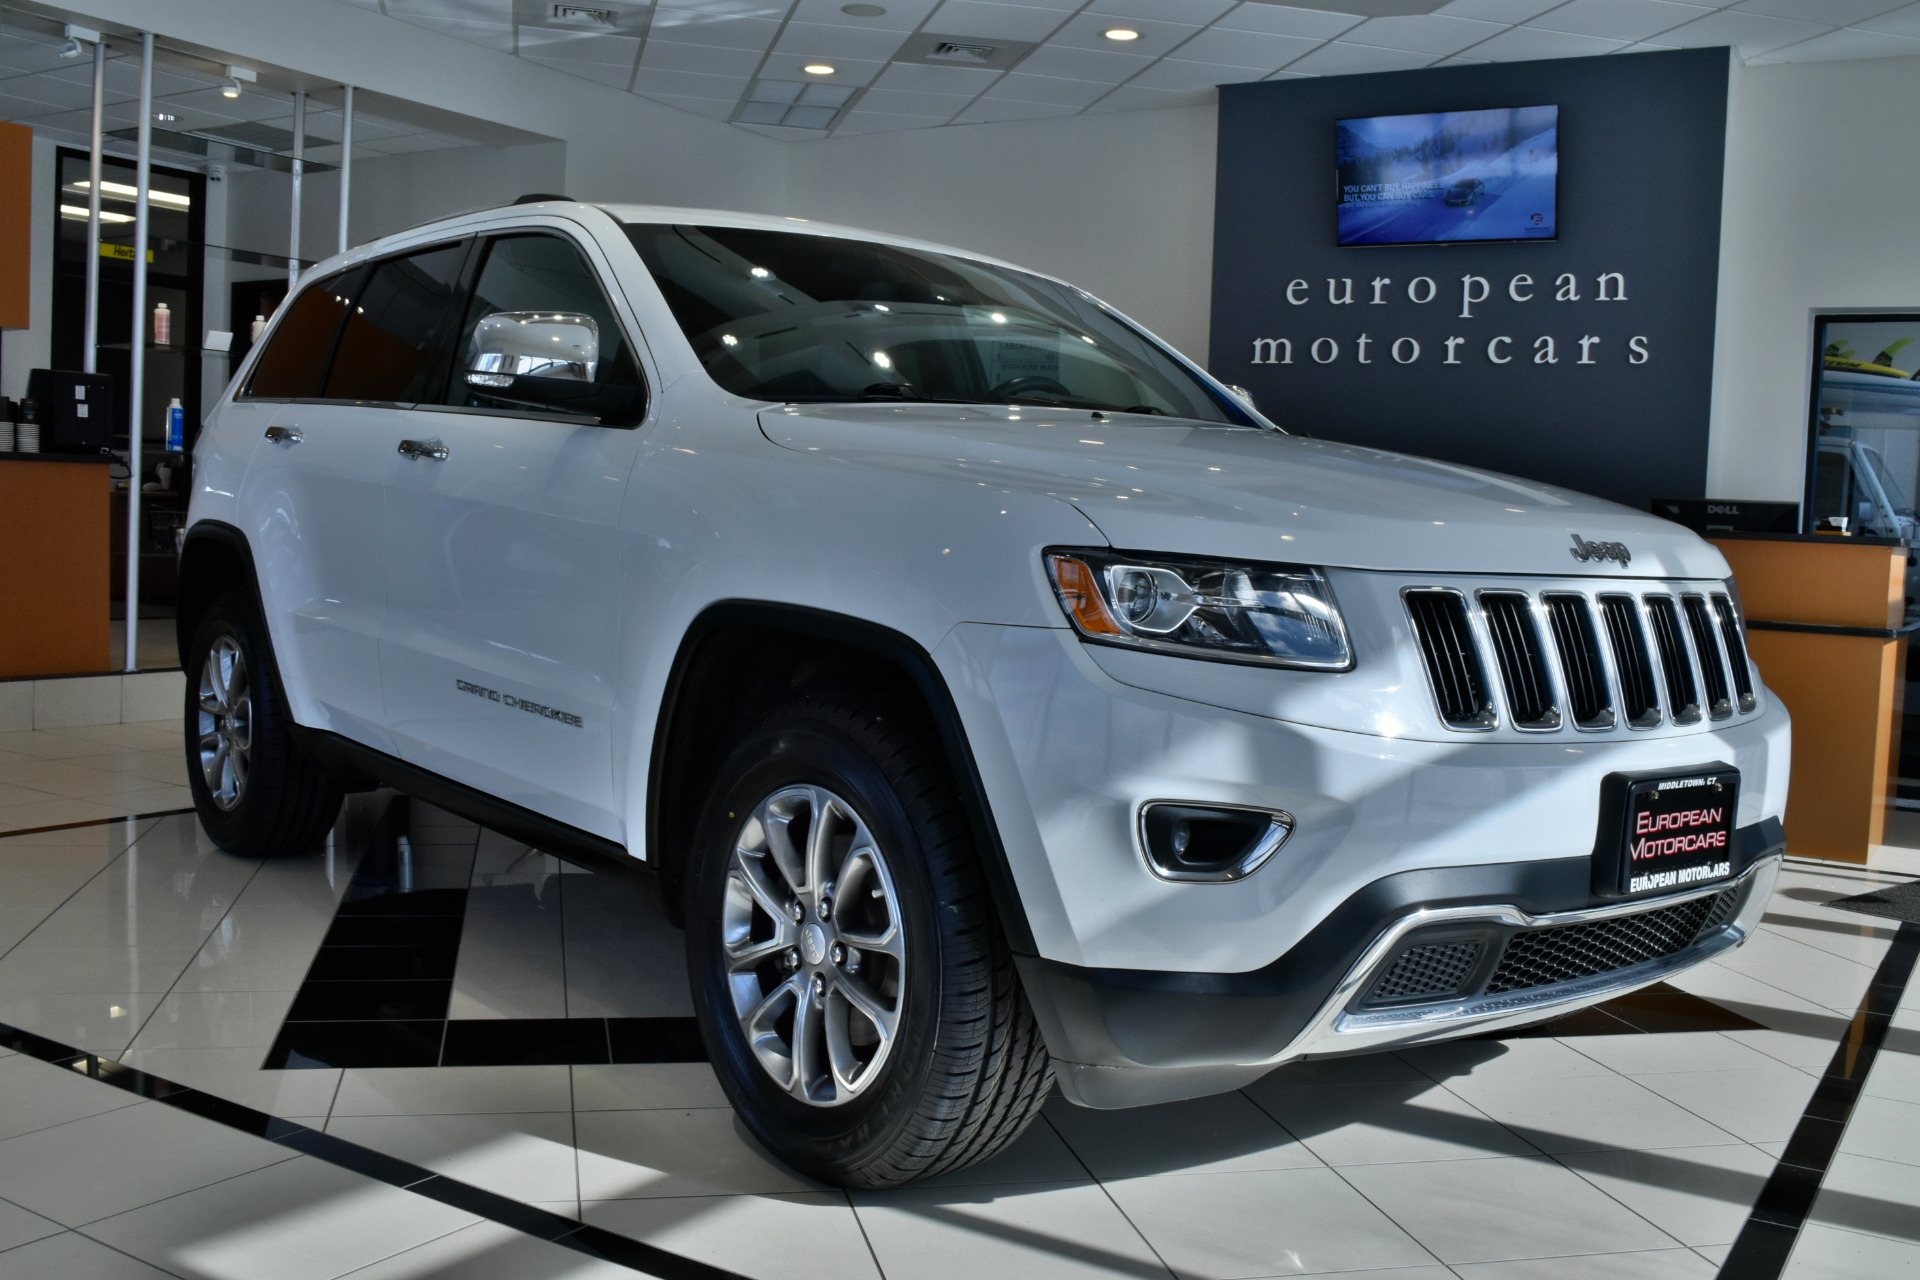 2014 jeep grand cherokee limited for sale near middletown ct ct jeep dealer stock 355976. Black Bedroom Furniture Sets. Home Design Ideas